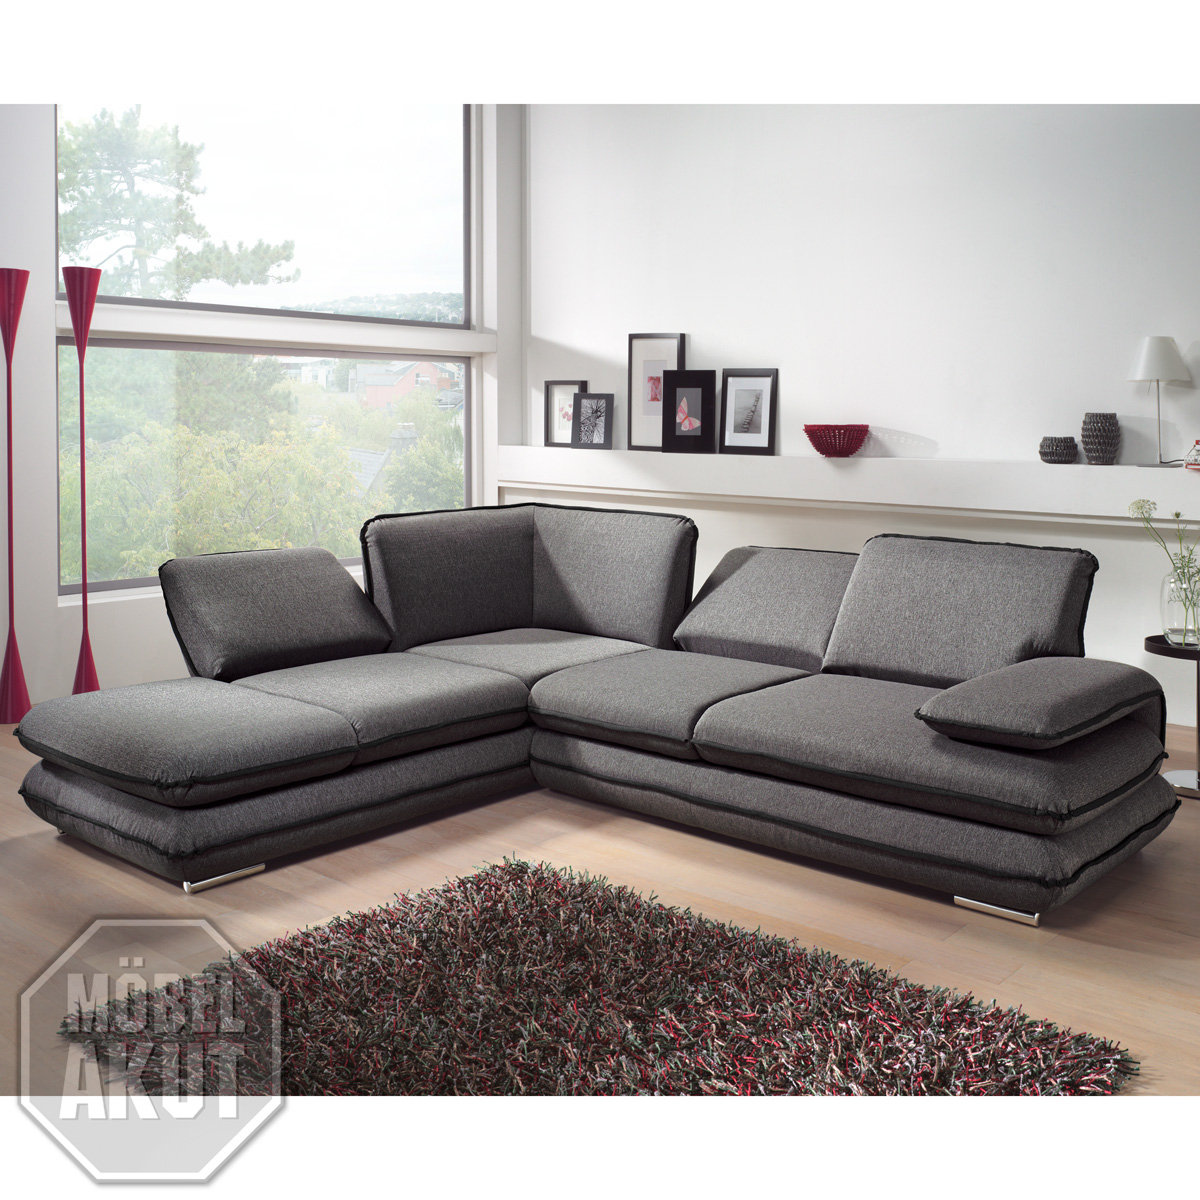 ecksofa turner sofa wohnlandschaft grau schwarz relaxfunktion 284 cm ebay. Black Bedroom Furniture Sets. Home Design Ideas